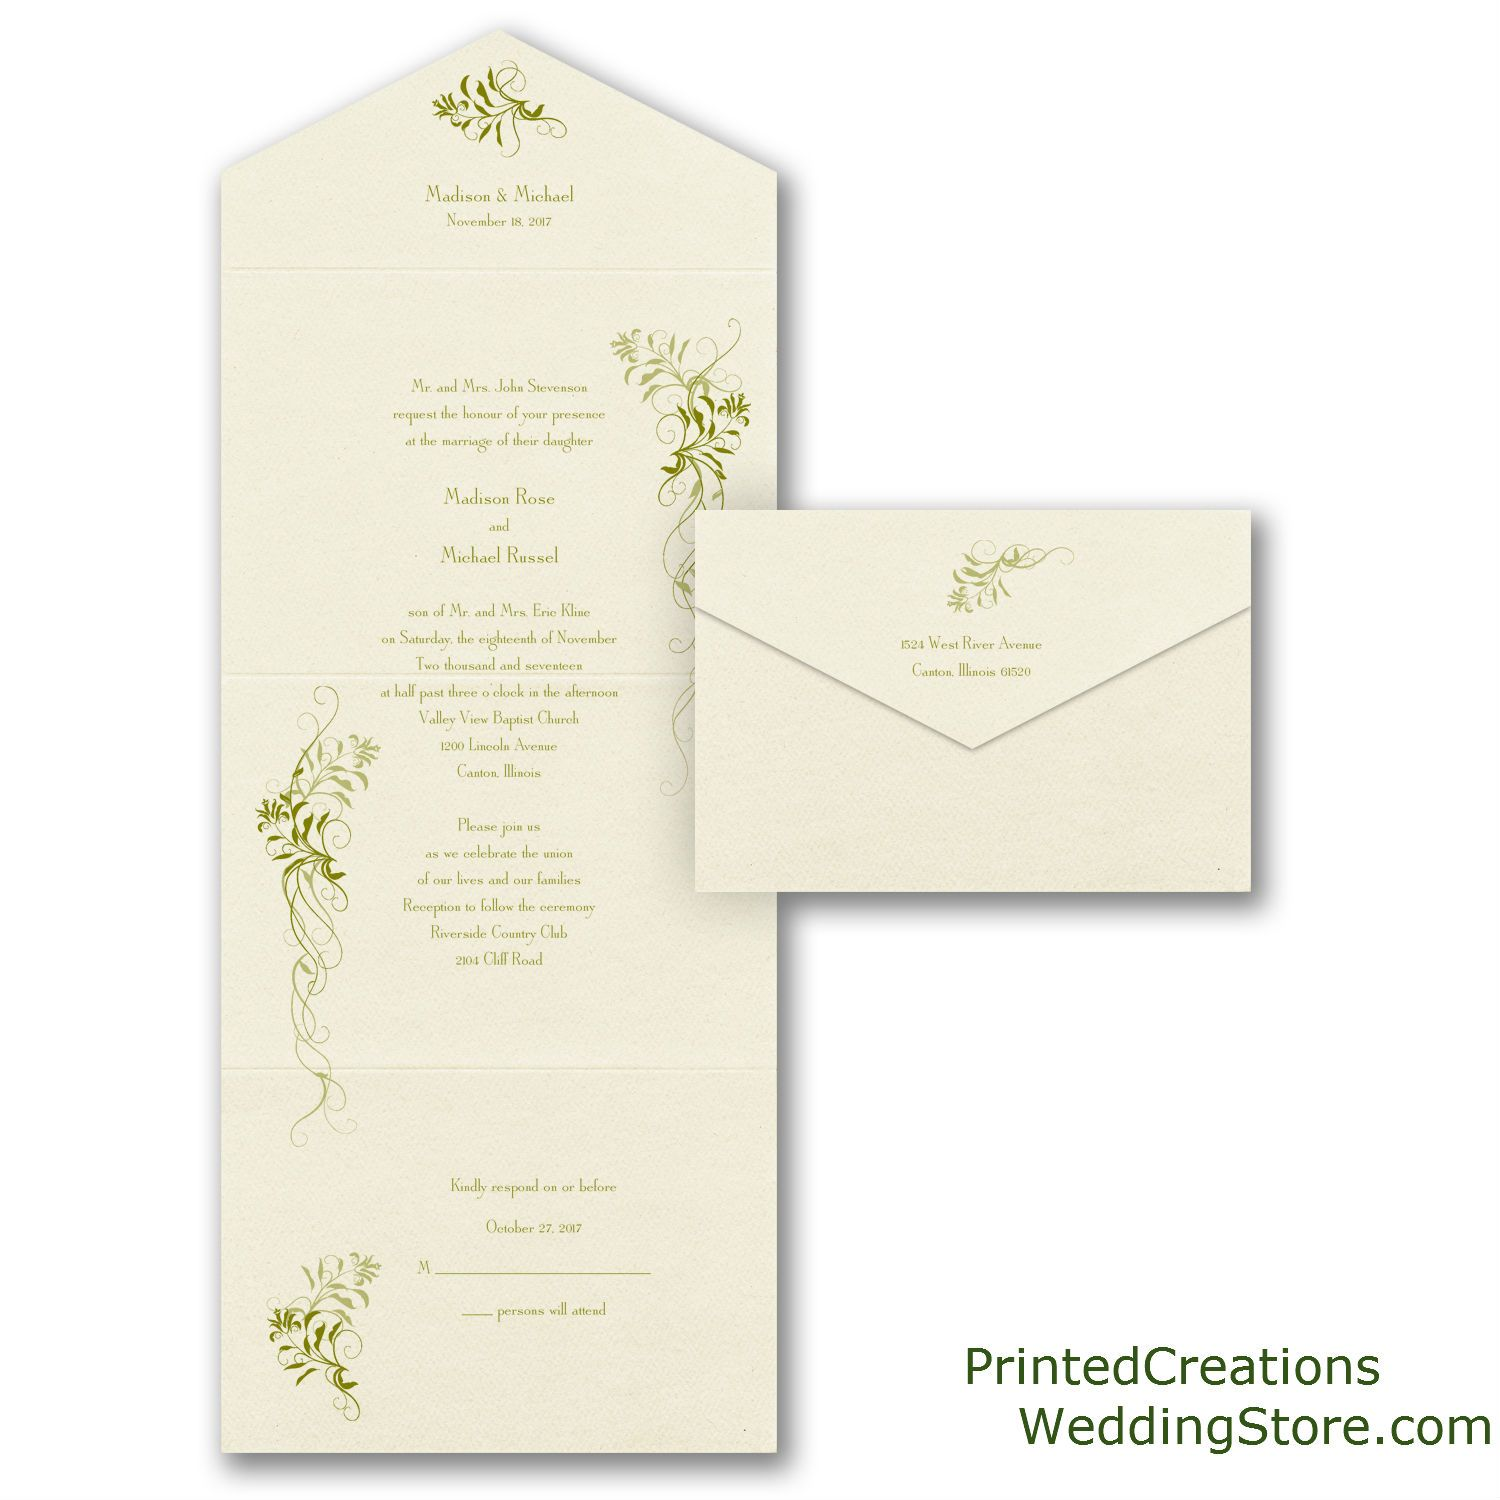 ideas for country wedding invitations%0A Larkspur Seal  u    n Send Wedding Invitation  Beautiful trailing green vines  accent this unique and